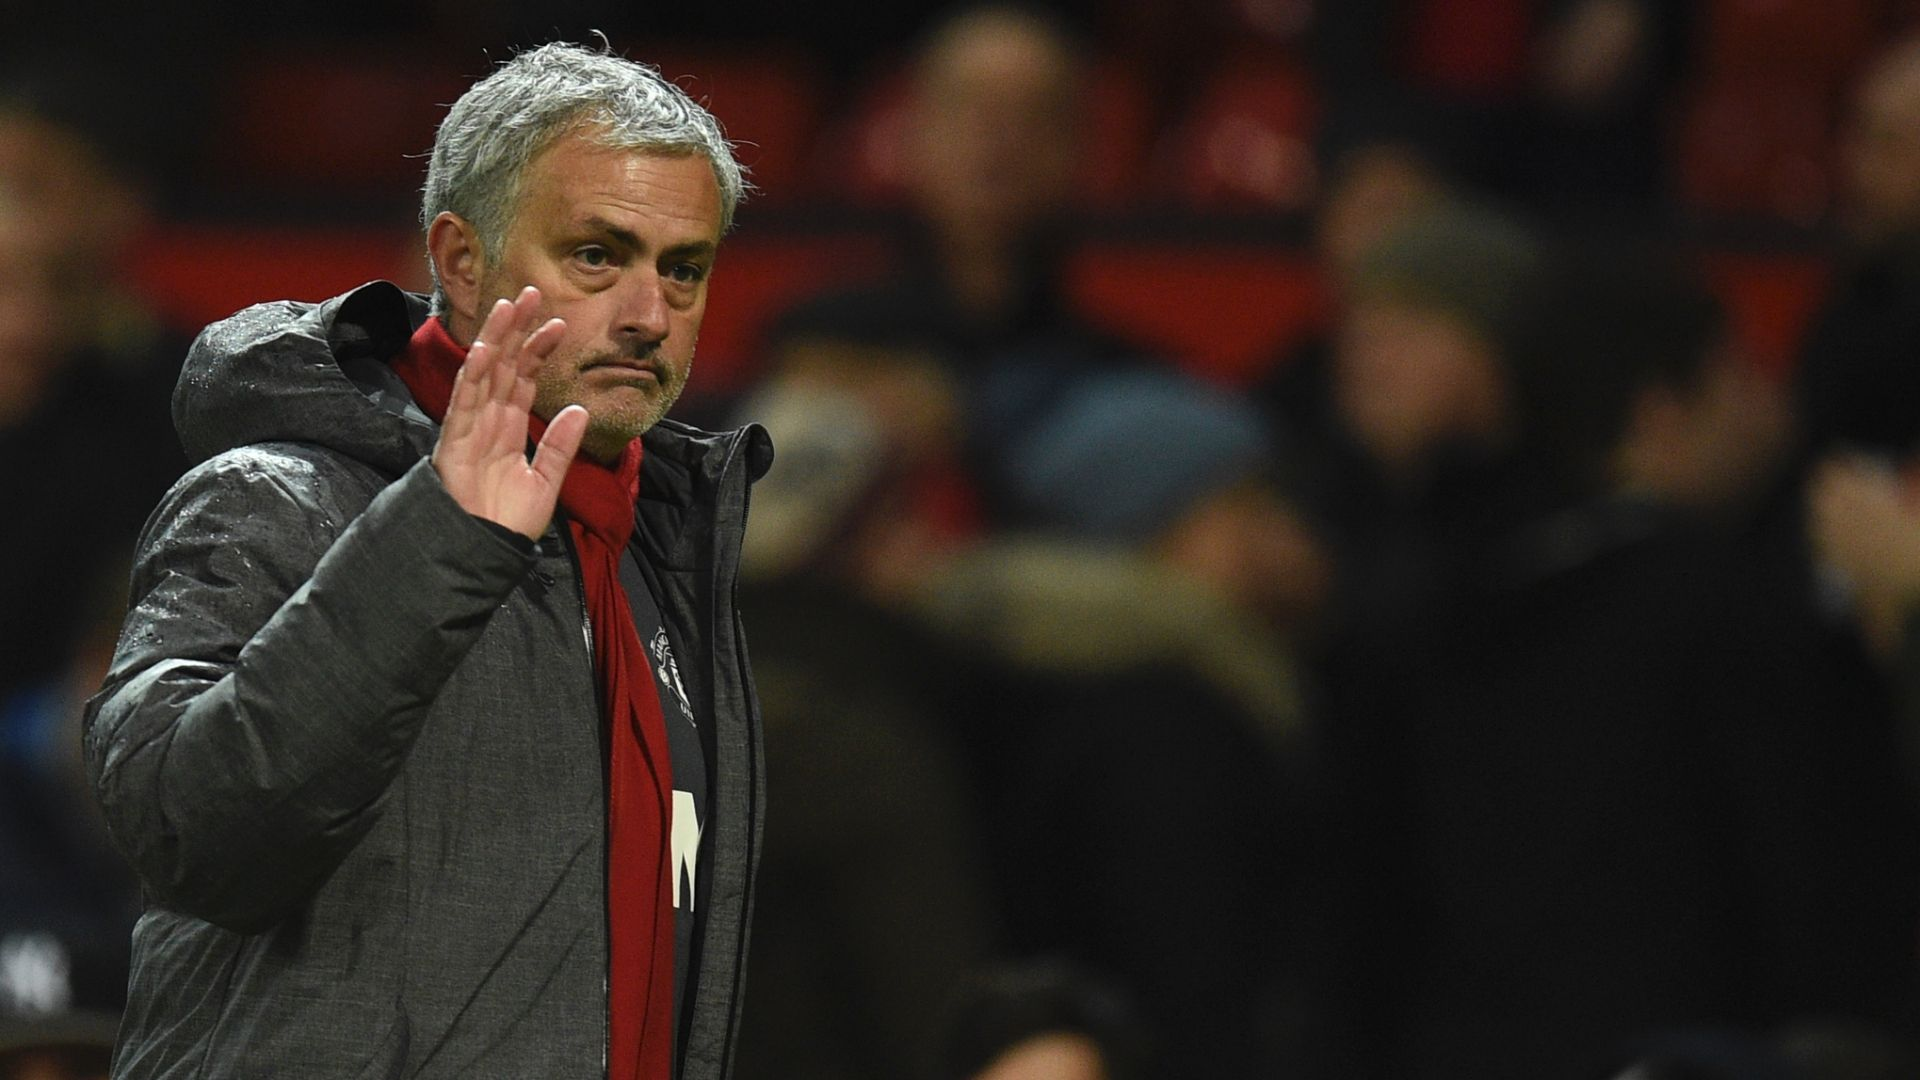 Mourinho's career will be defined at Man United